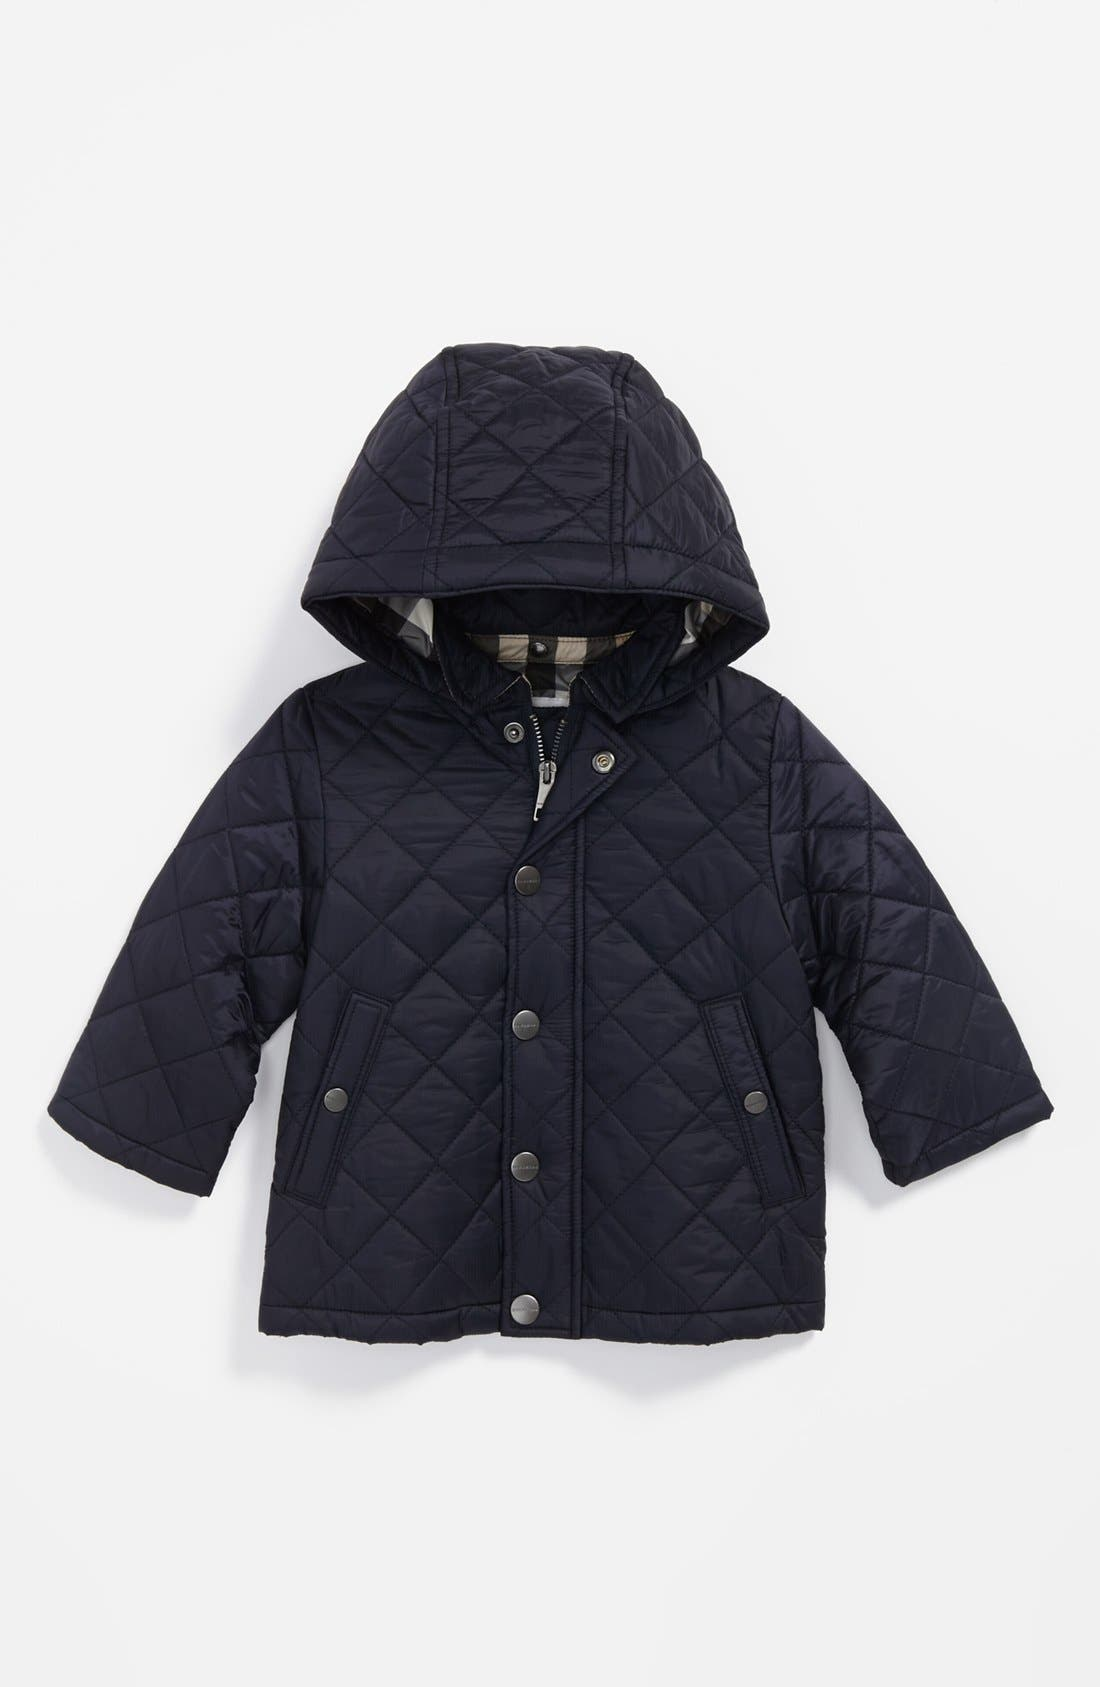 Alternate Image 1 Selected - Burberry 'Jerry' Quilted Jacket (Toddler Boys)